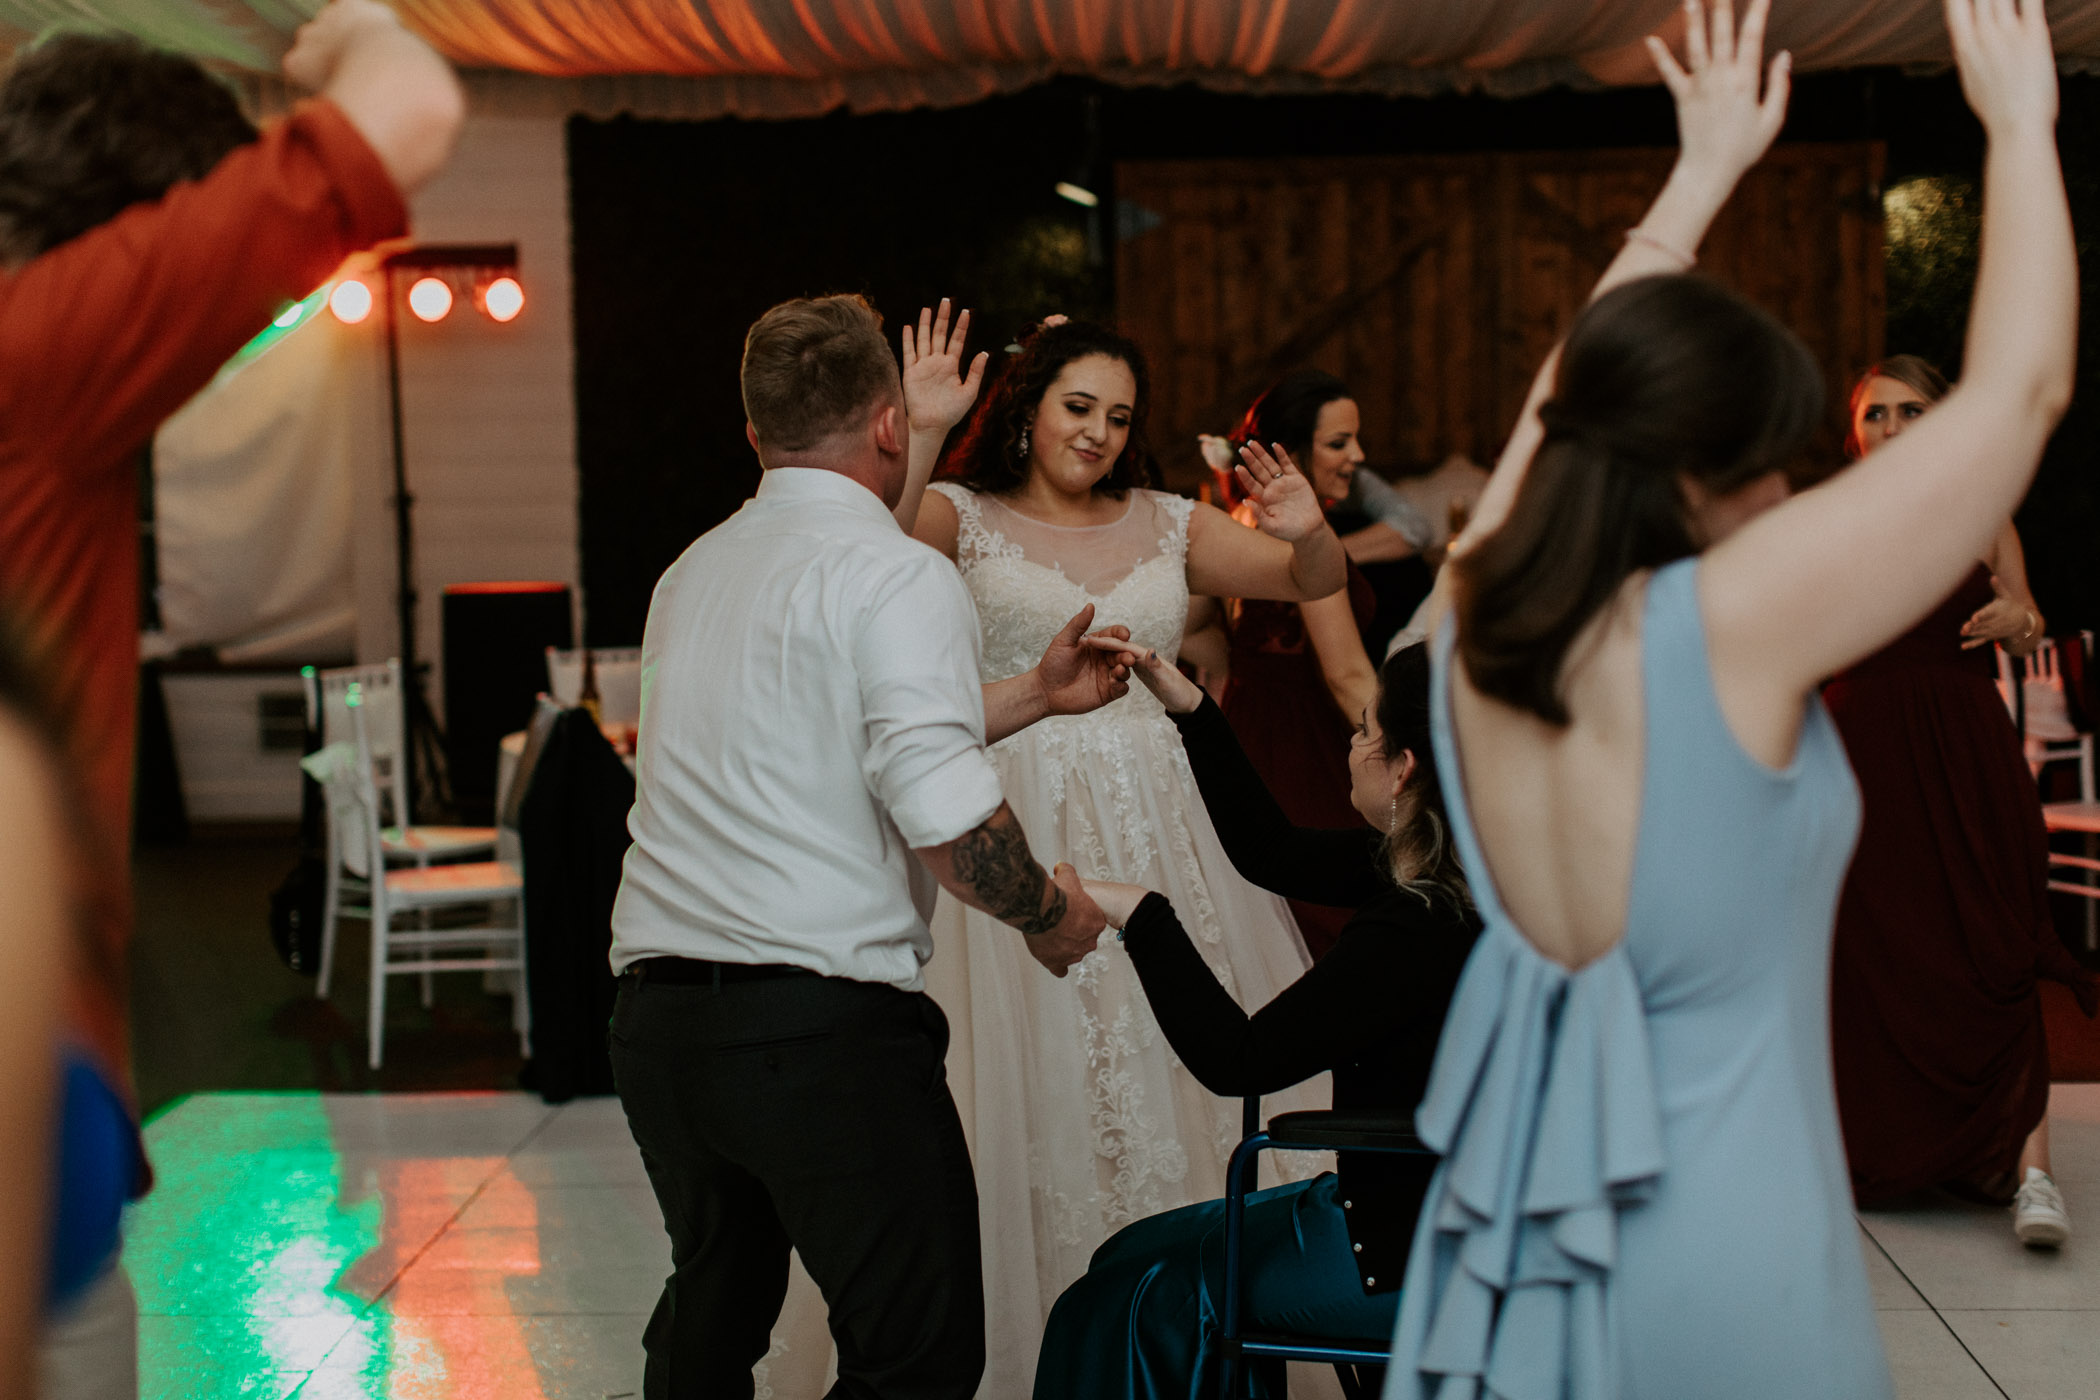 Bride dancing with her hands in the air a their wedding reception